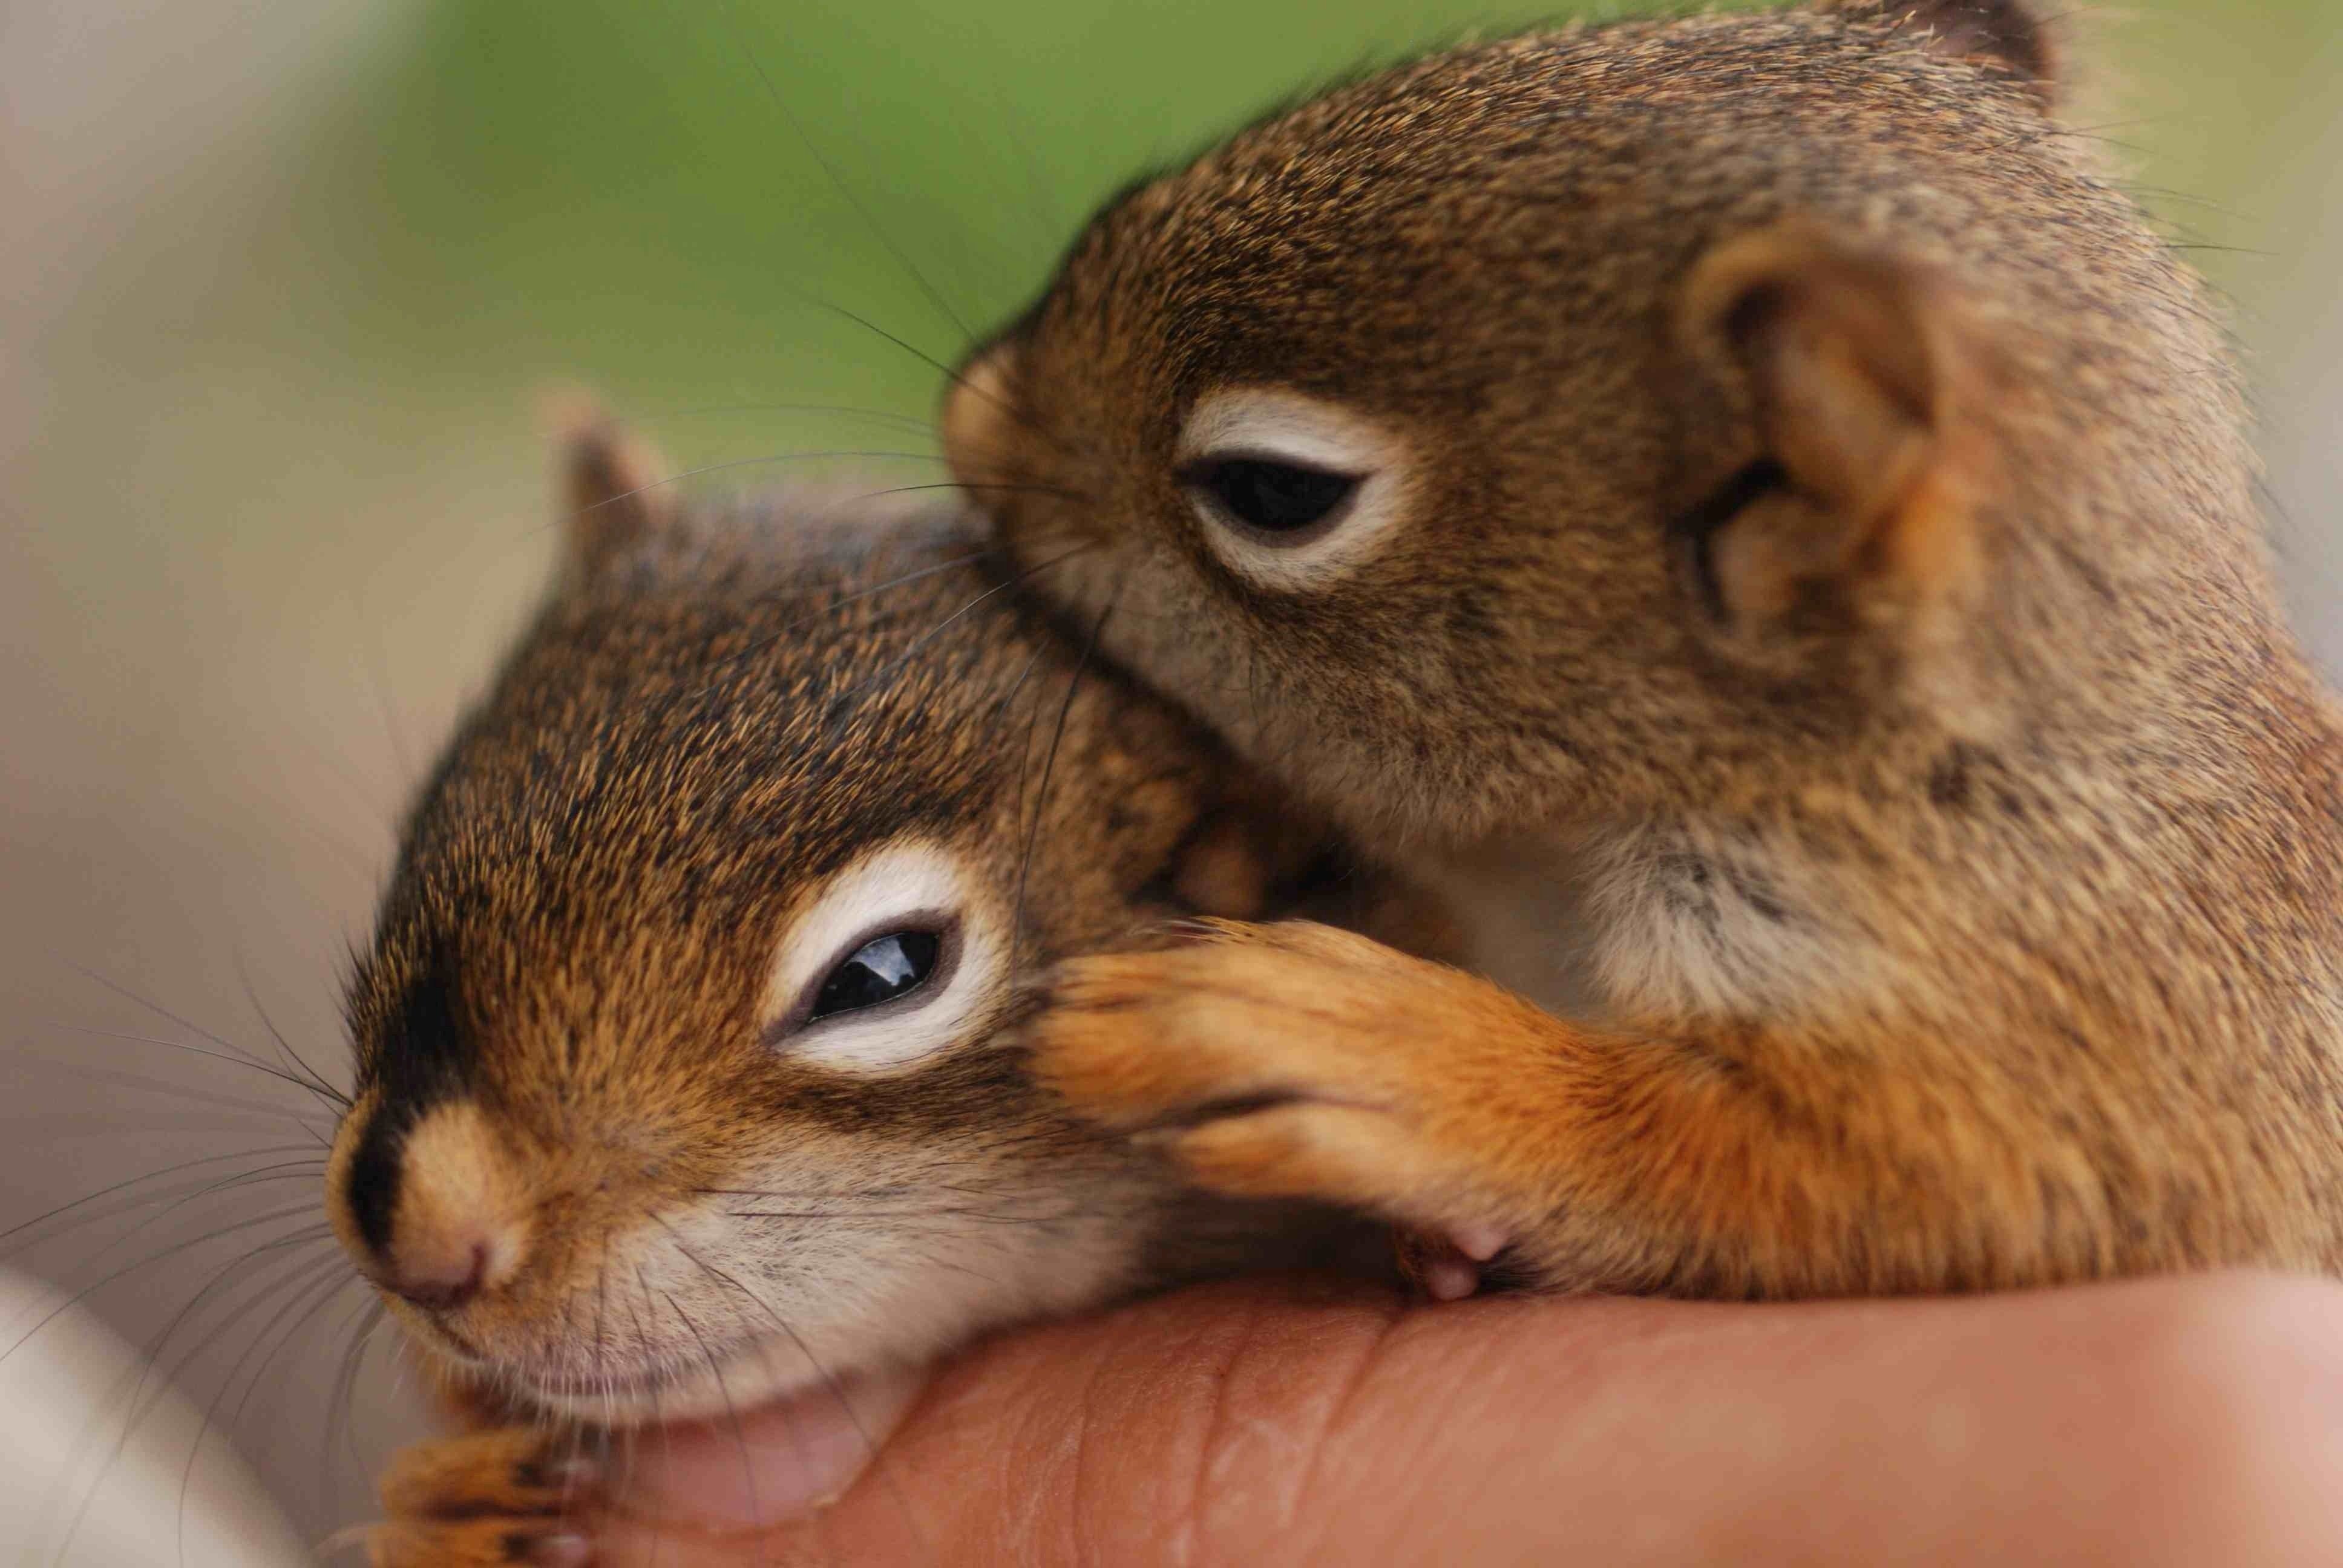 Two squirrels together in love squirrels pinterest if your home built near a fruit bearing tree vines or fruit bushes you have most likely seen squirrels happily hoarding and munching these mount geenschuldenfo Choice Image